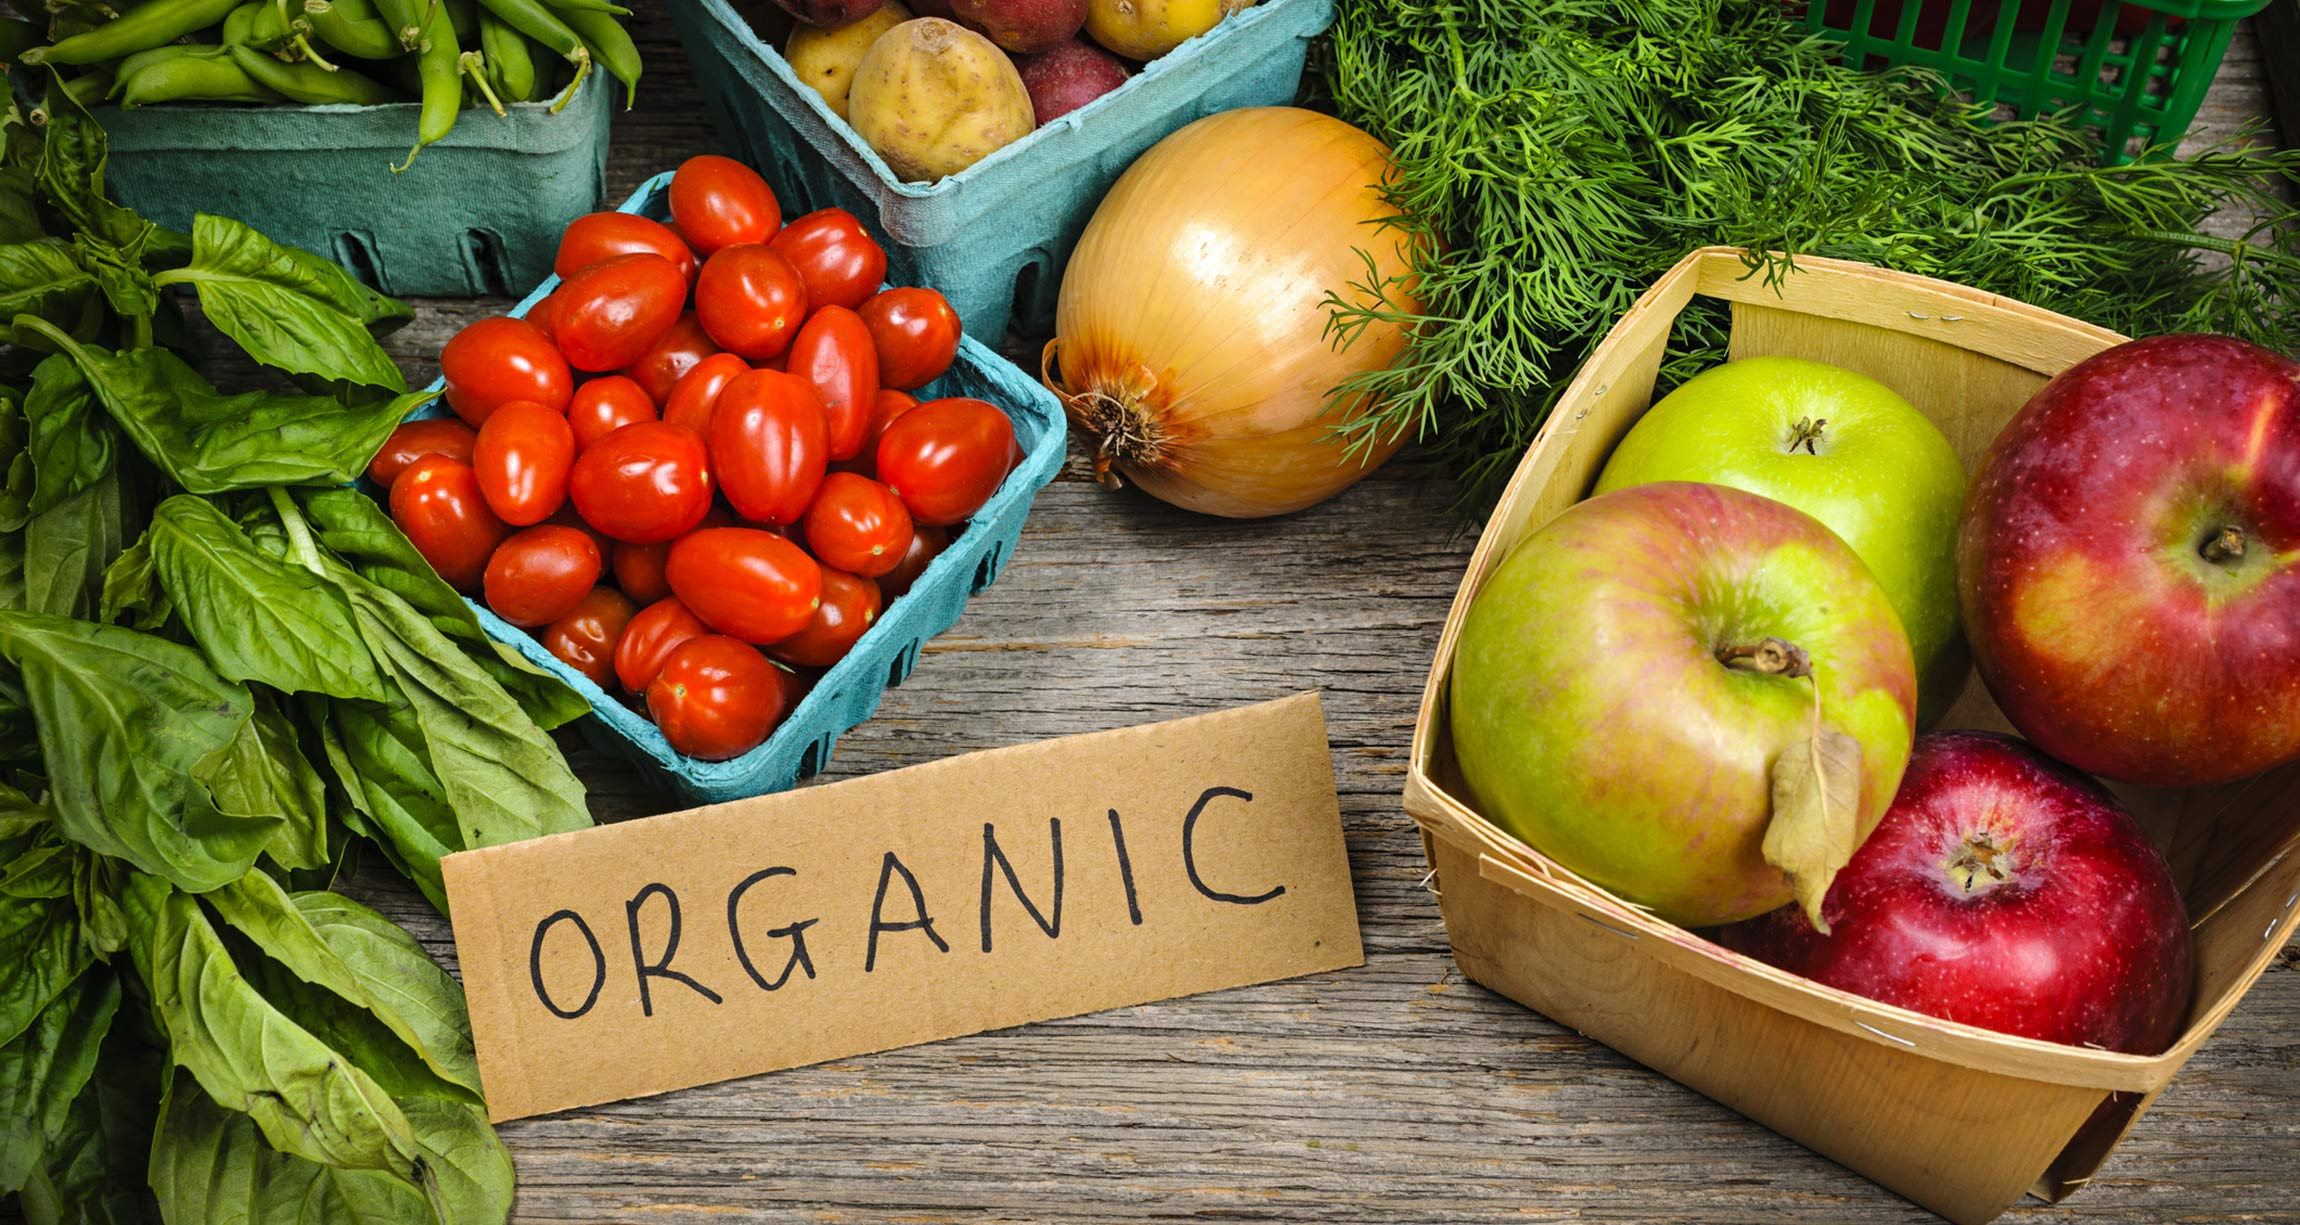 Where can I Get Organic Fruits and Vegetables in Delhi?